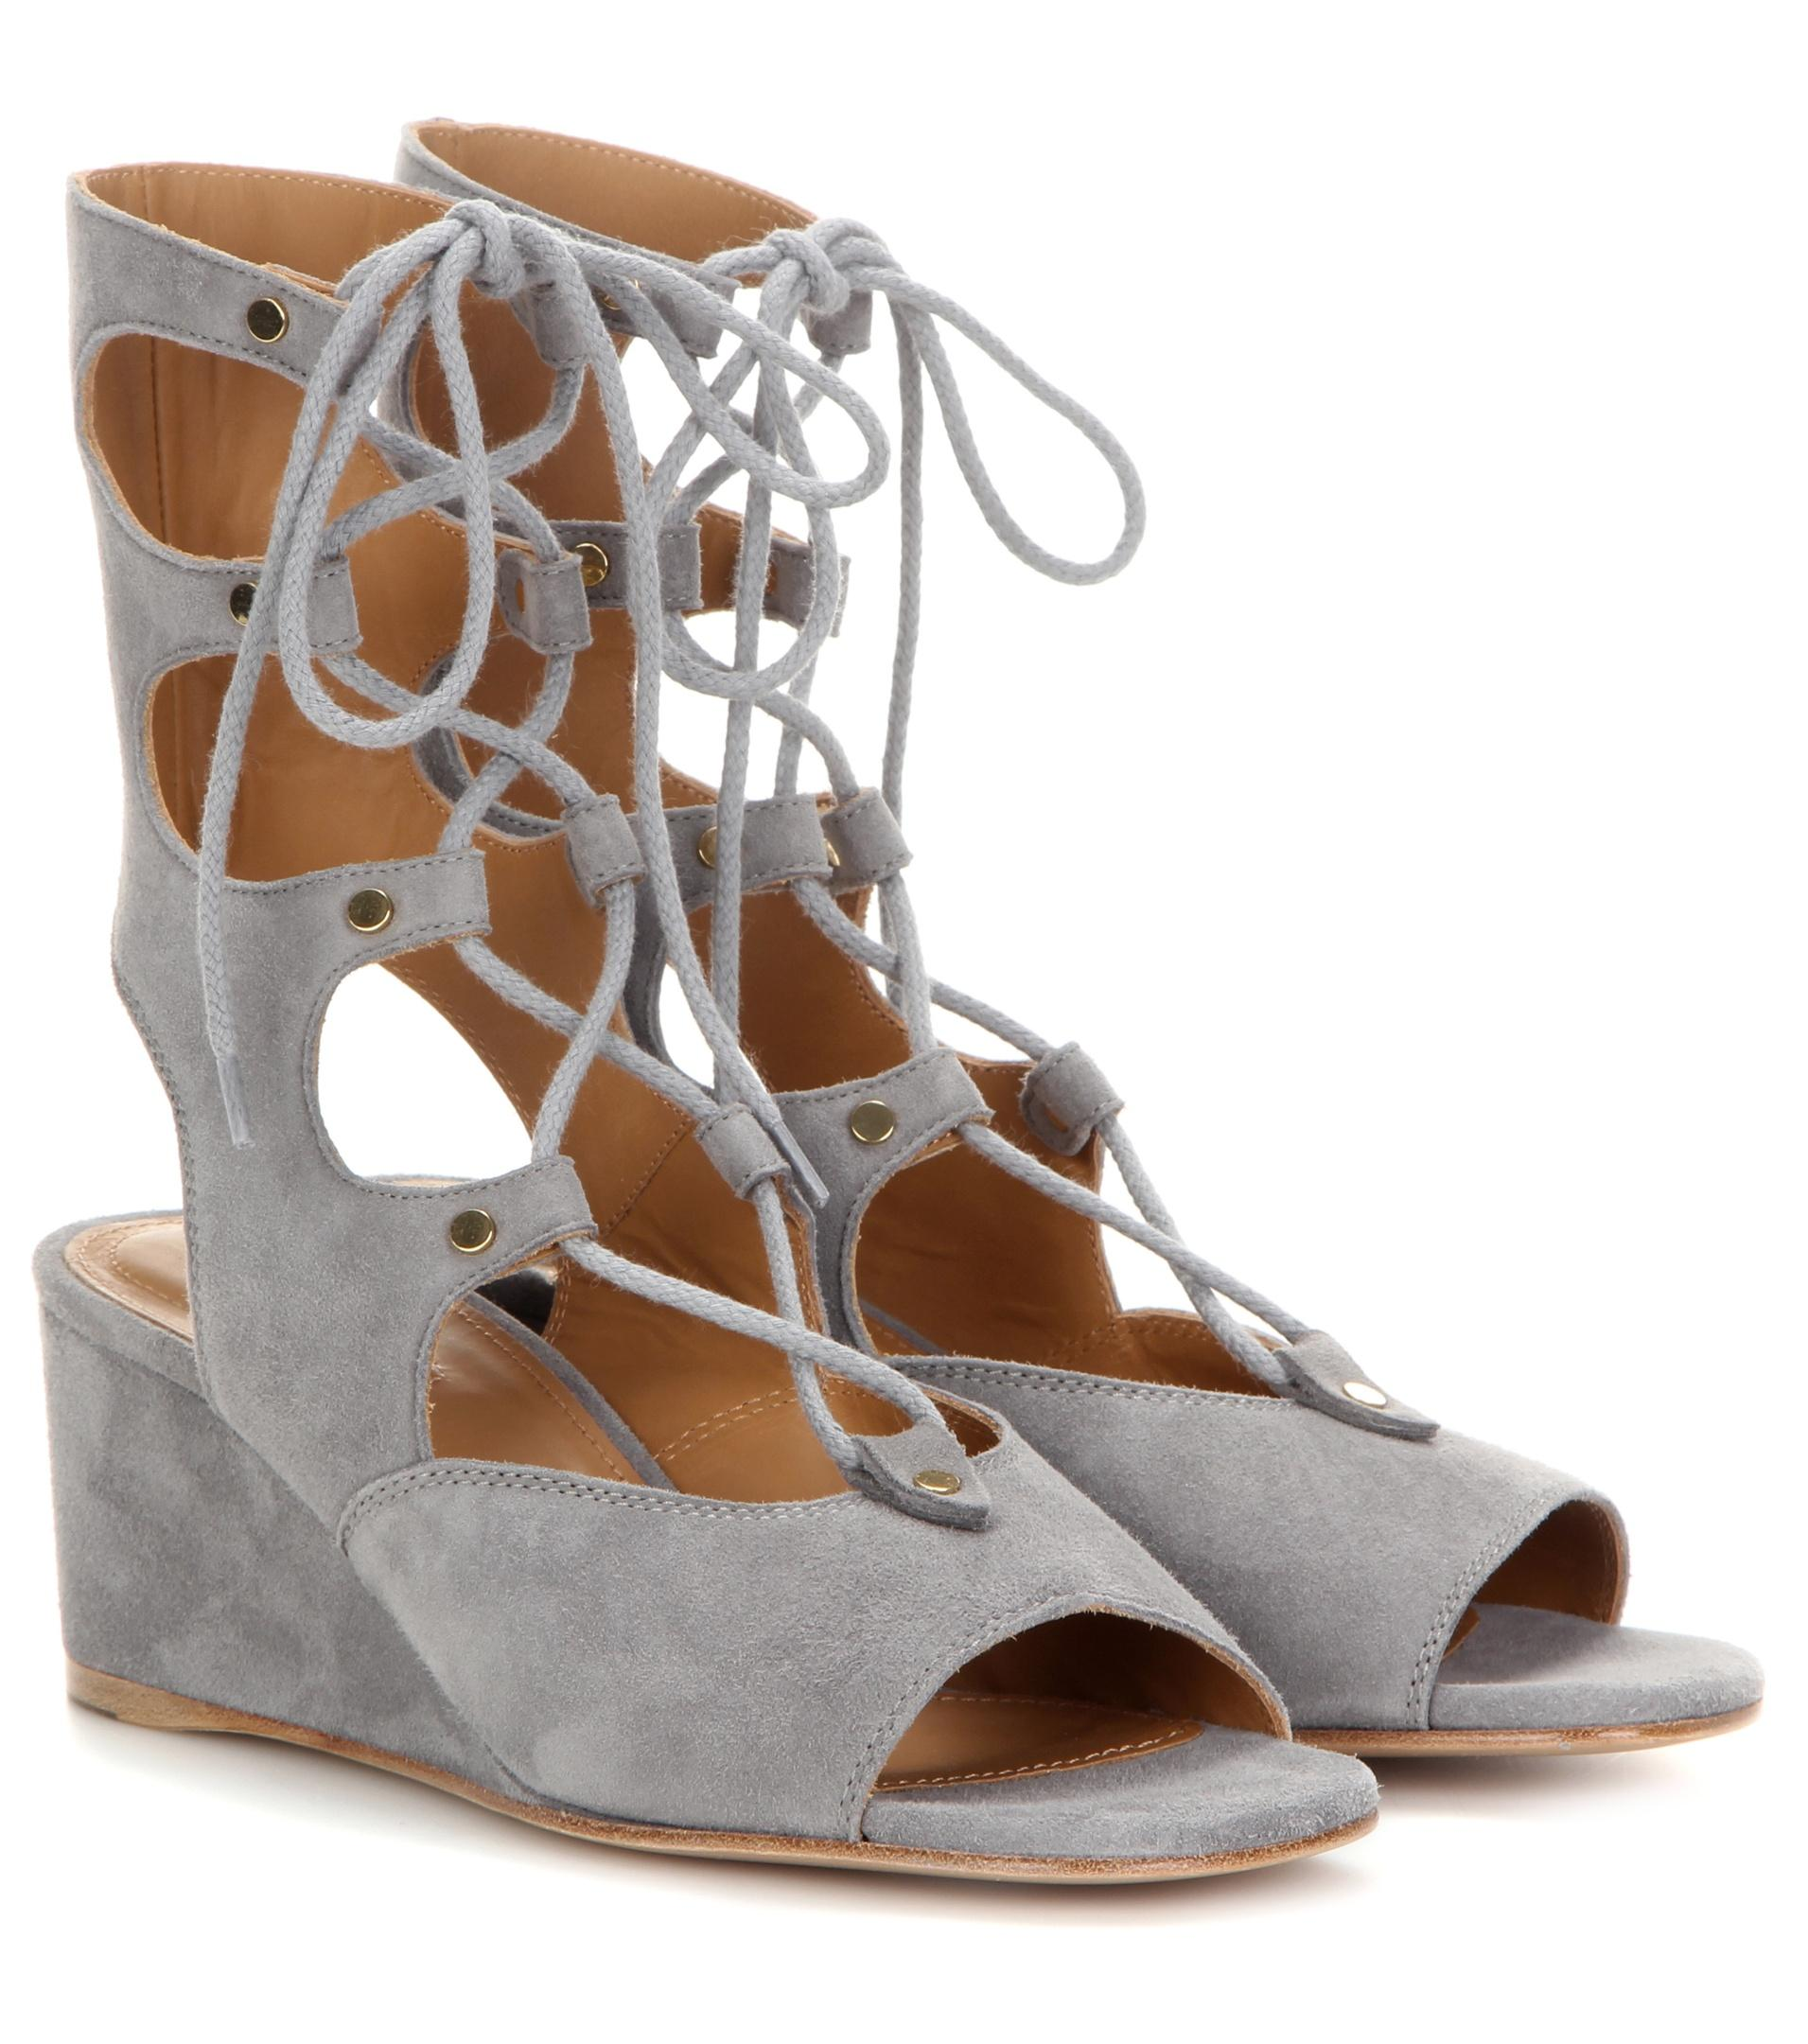 chlo 233 foster suede gladiator wedge sandals in gray lyst